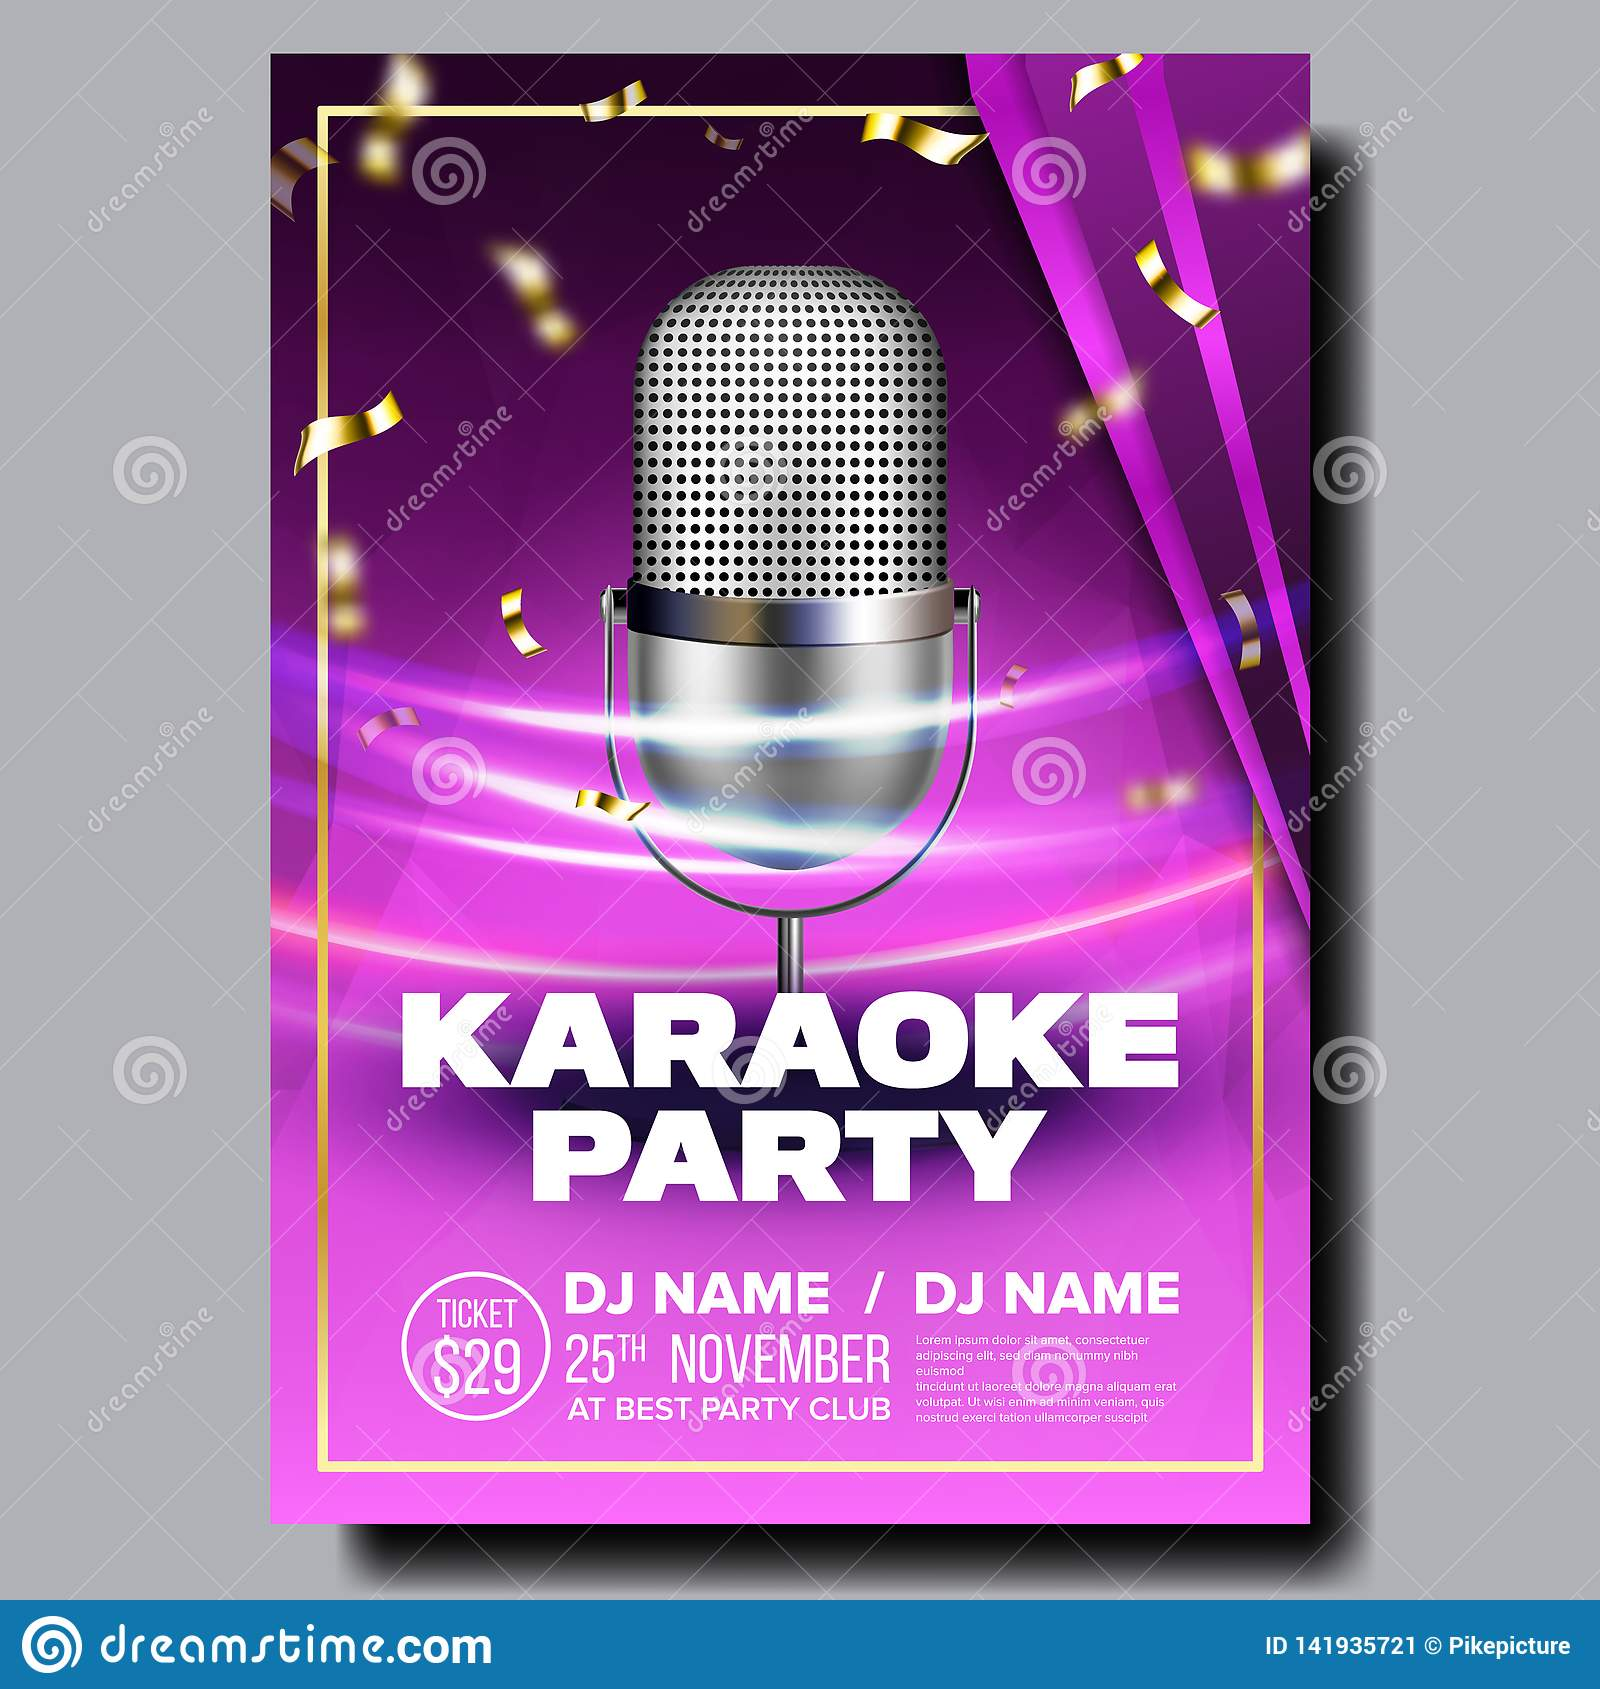 Karaoke Poster Vector  Sing Song  Karaoke Dance Event